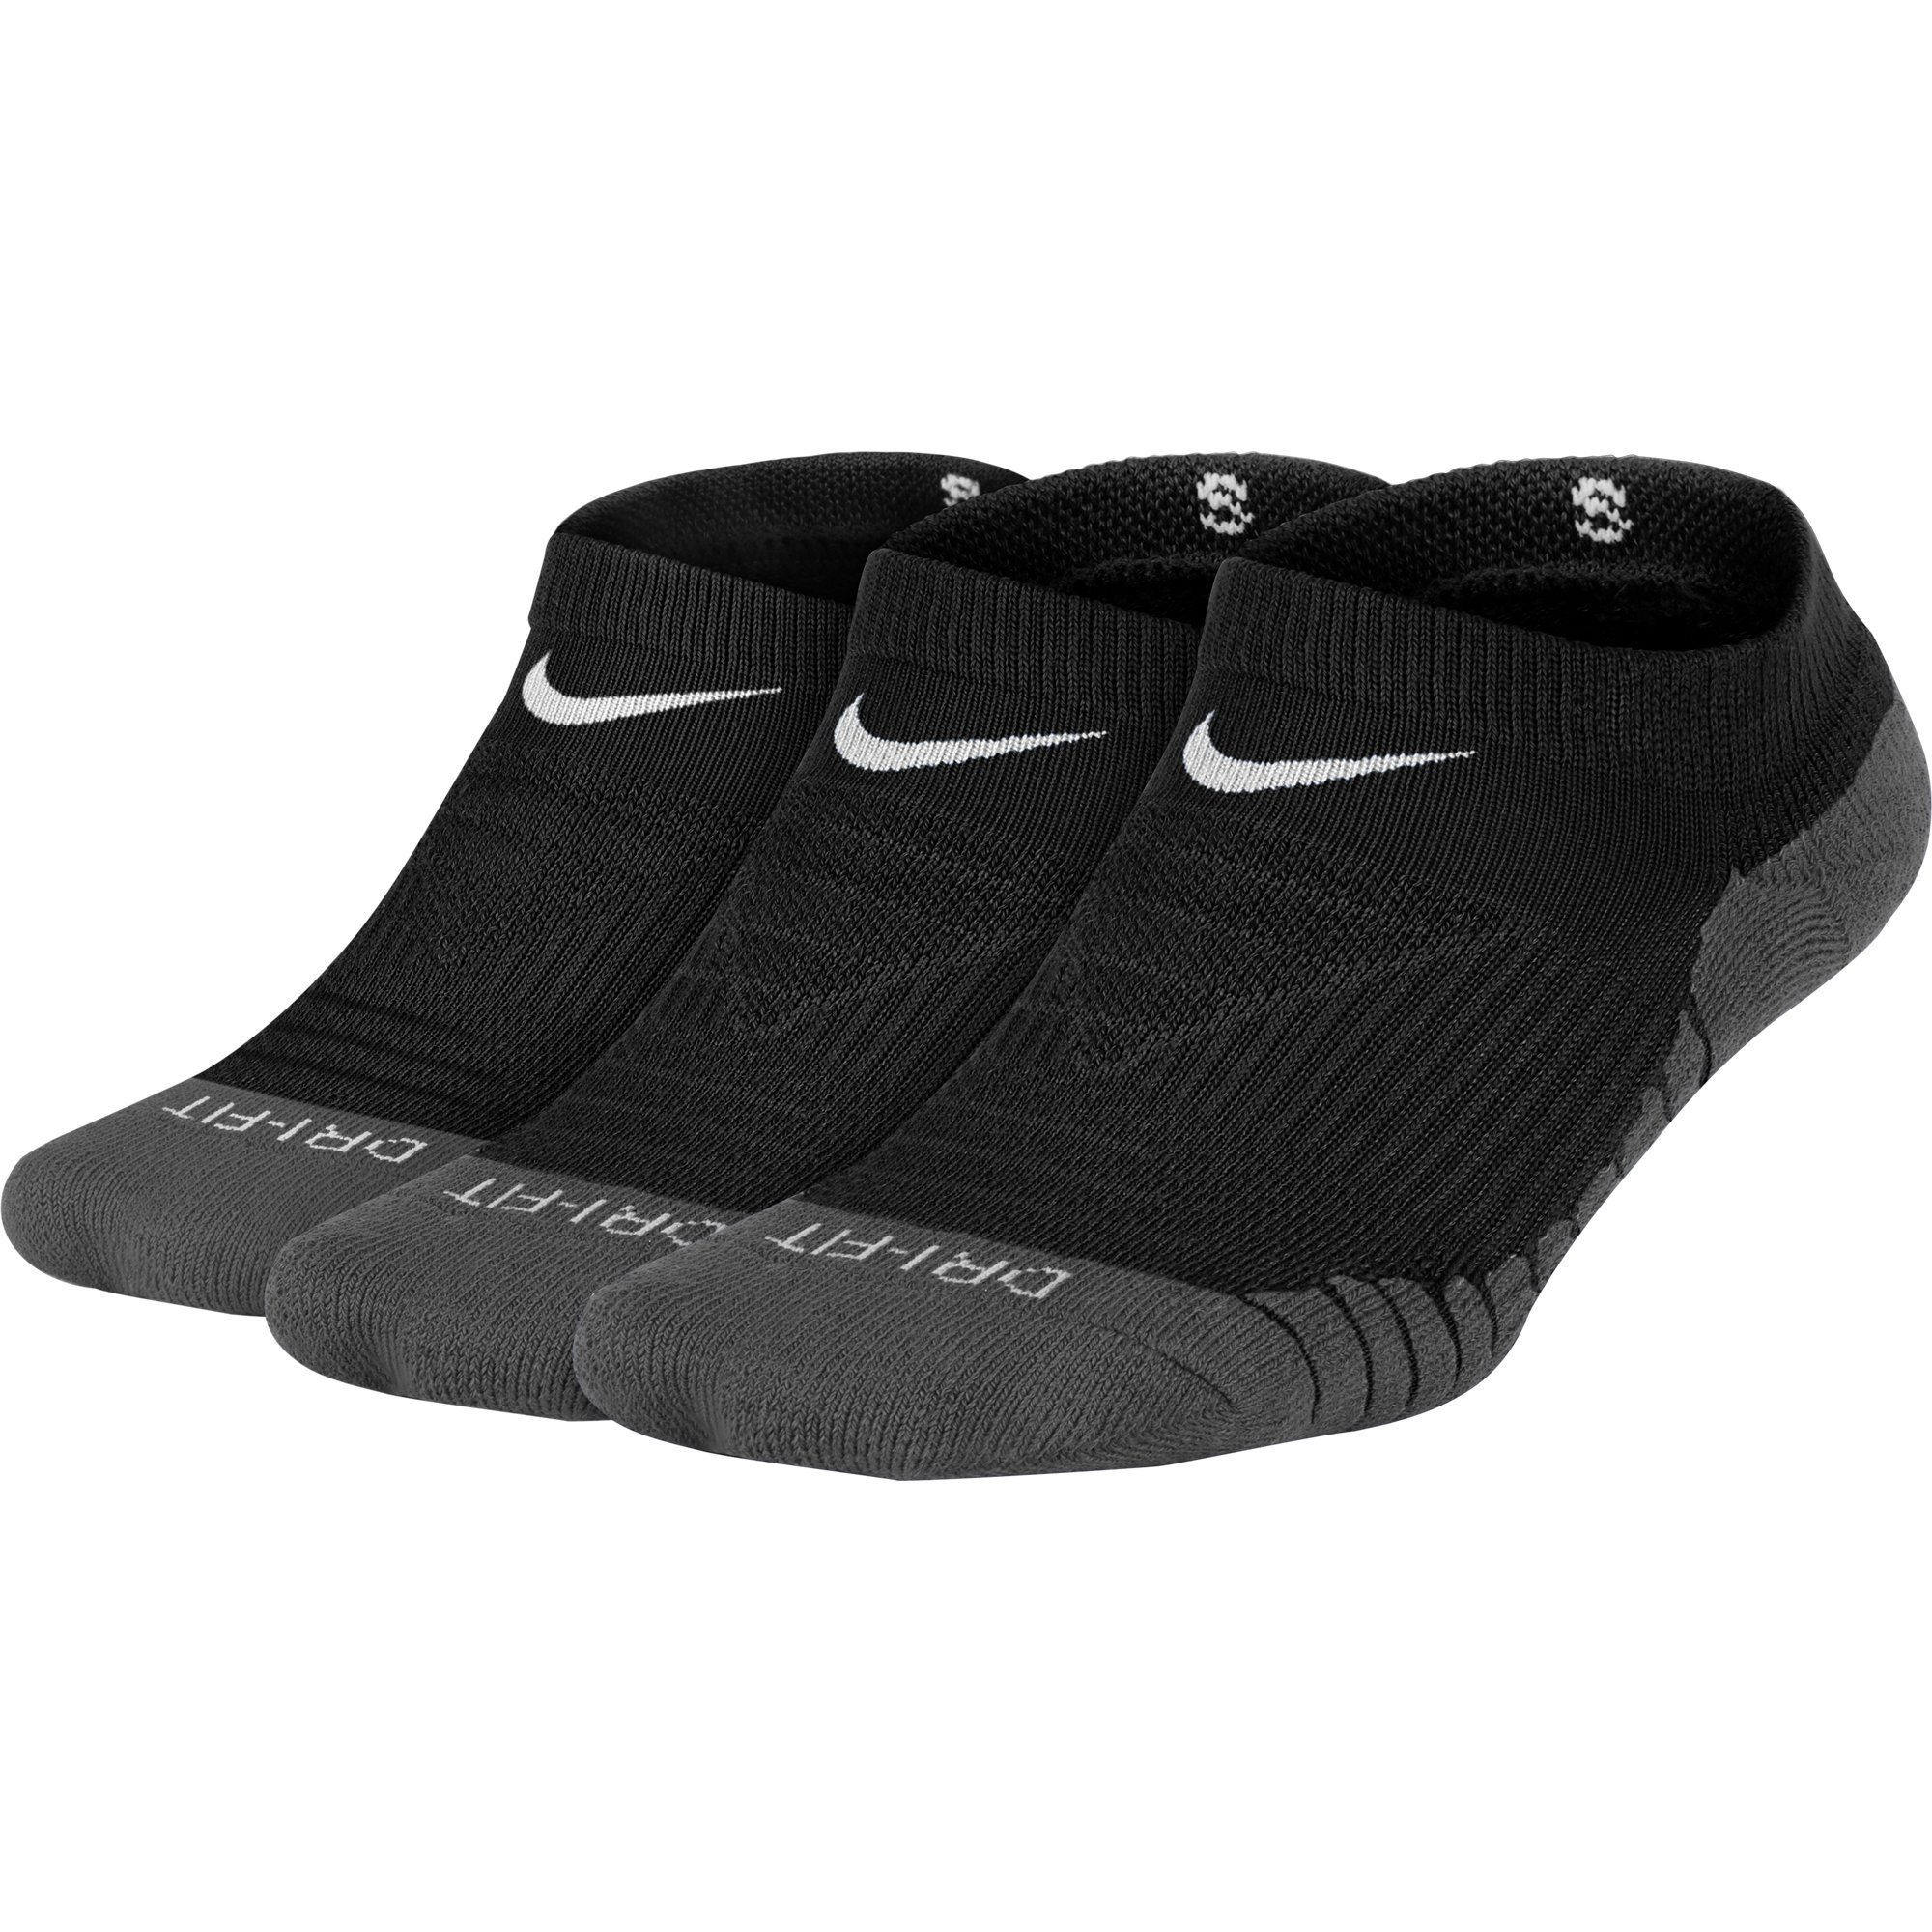 NIKE Kids' Unisex Everyday Max Cushion No-Show Socks (3 Pairs), Black/Anthracite/White, Small